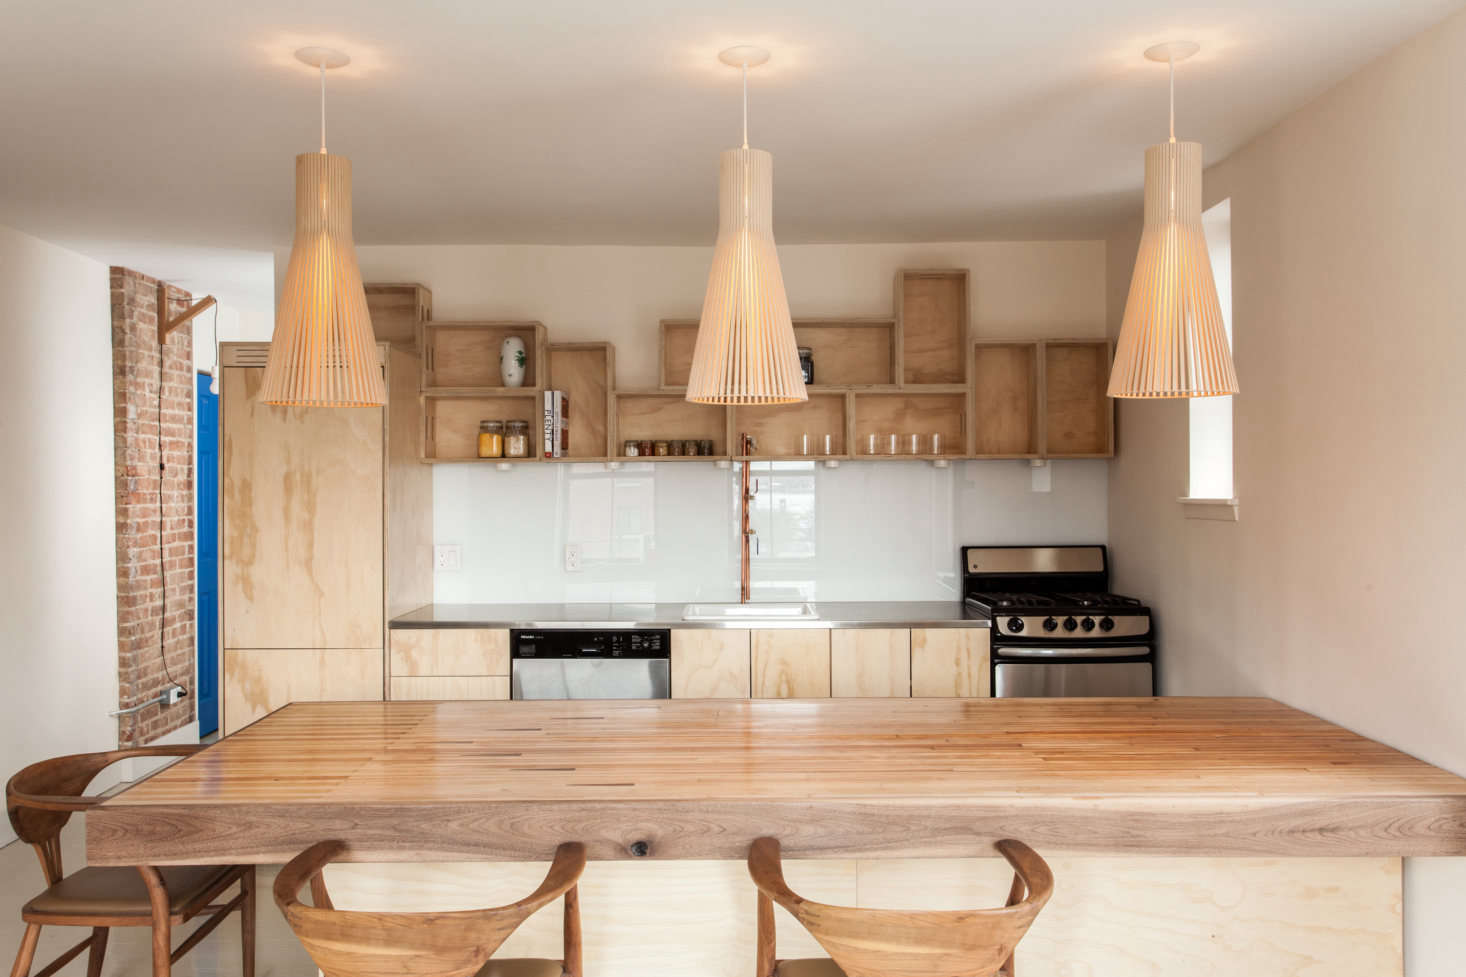 An unconventional, rustic-meets-urban kitchen in Brooklyn. Photograph by Peter Dressel, courtesy of CO Adaptive, from Kitchen of the Week: A Clever Kitchen Built from Affordable and Recycled Materials.